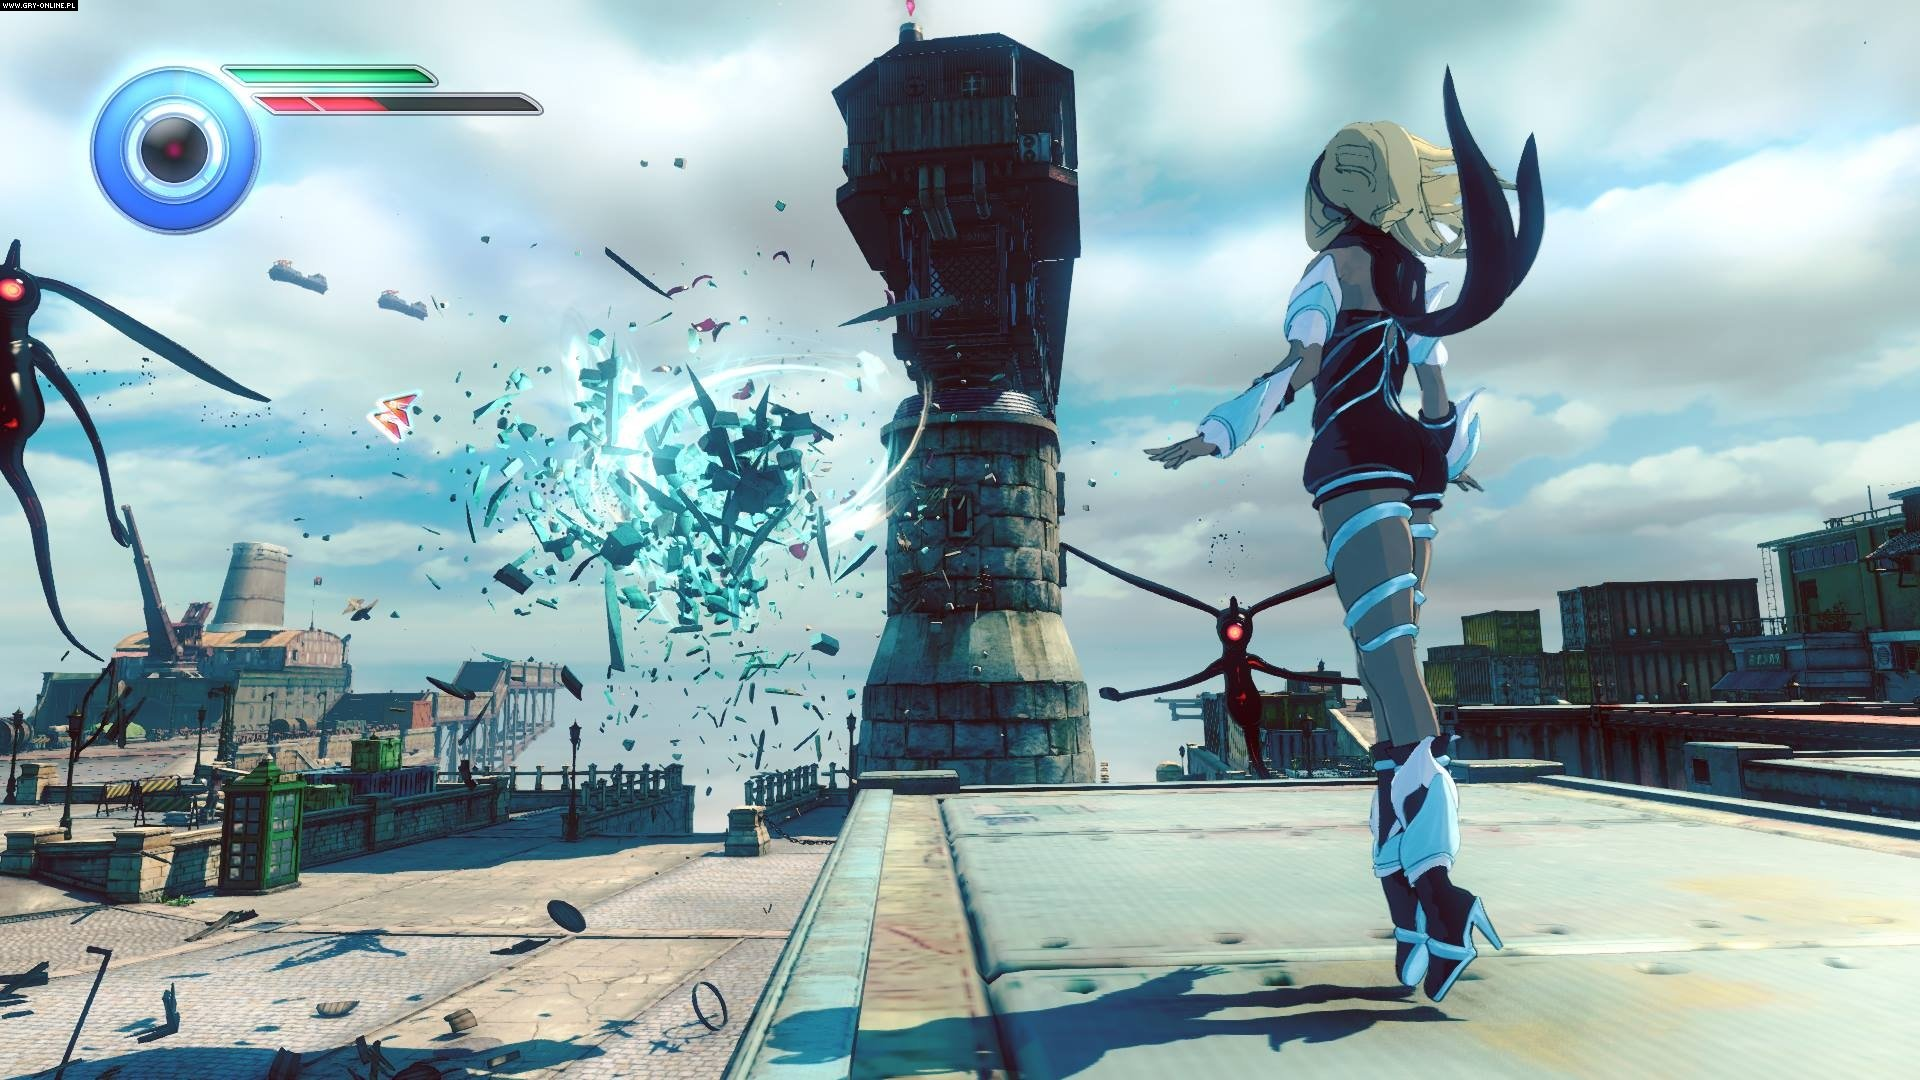 Gravity Rush 2 PS4 Gry Screen 9/60, Sony Interactive Entertainment